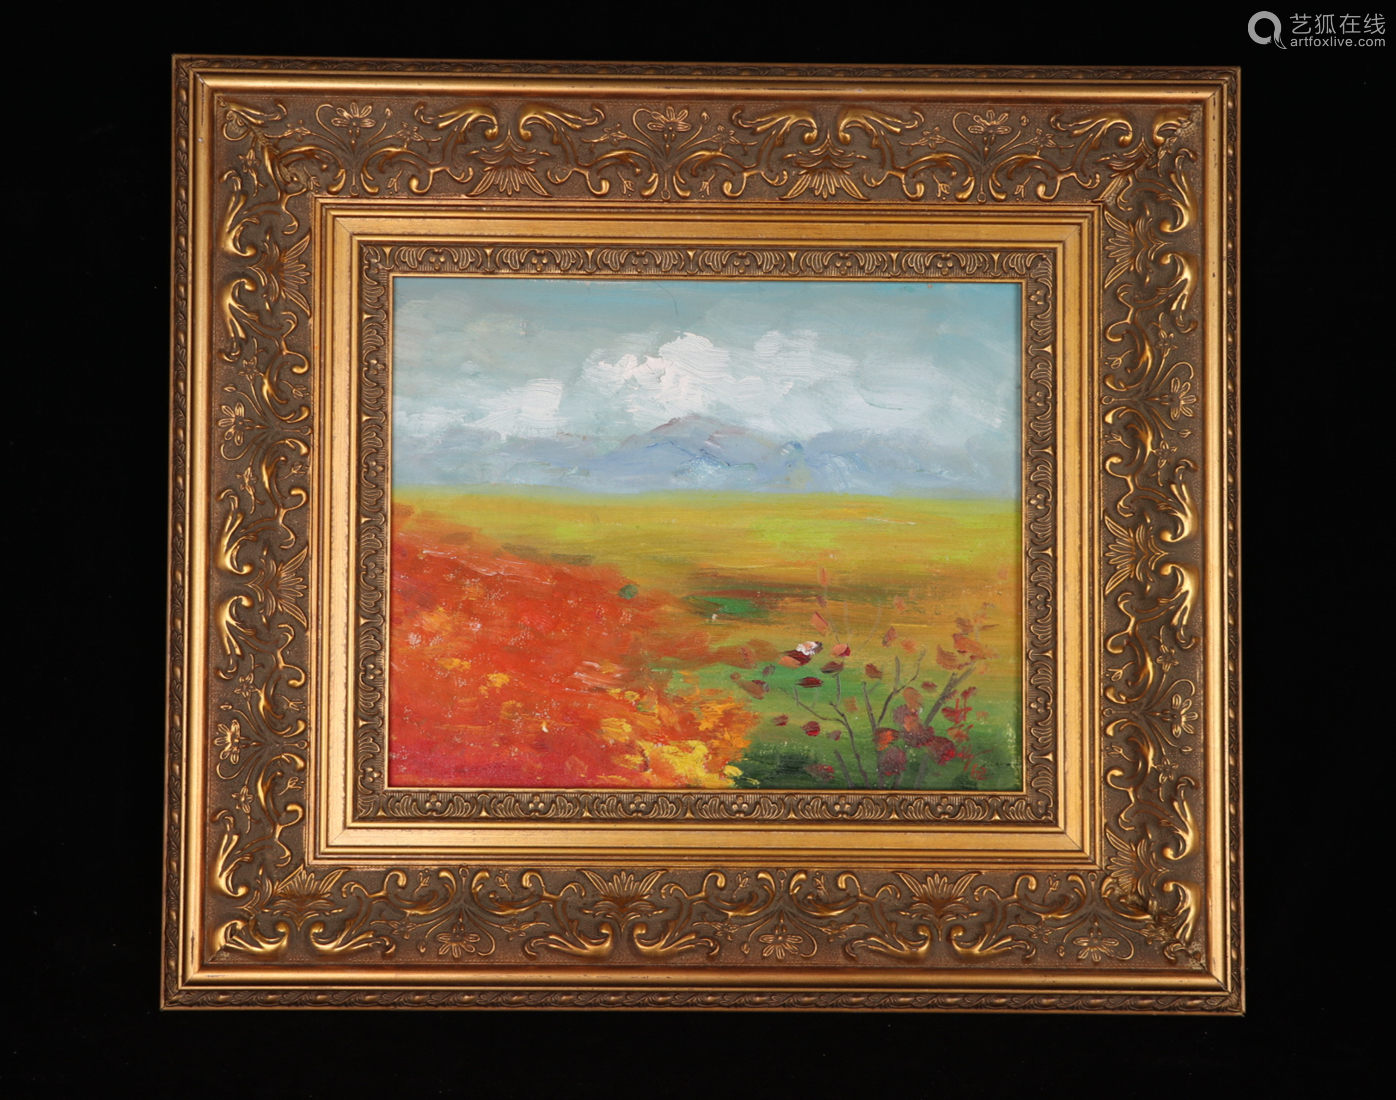 A Lin fengmian's landscape Oil Painting